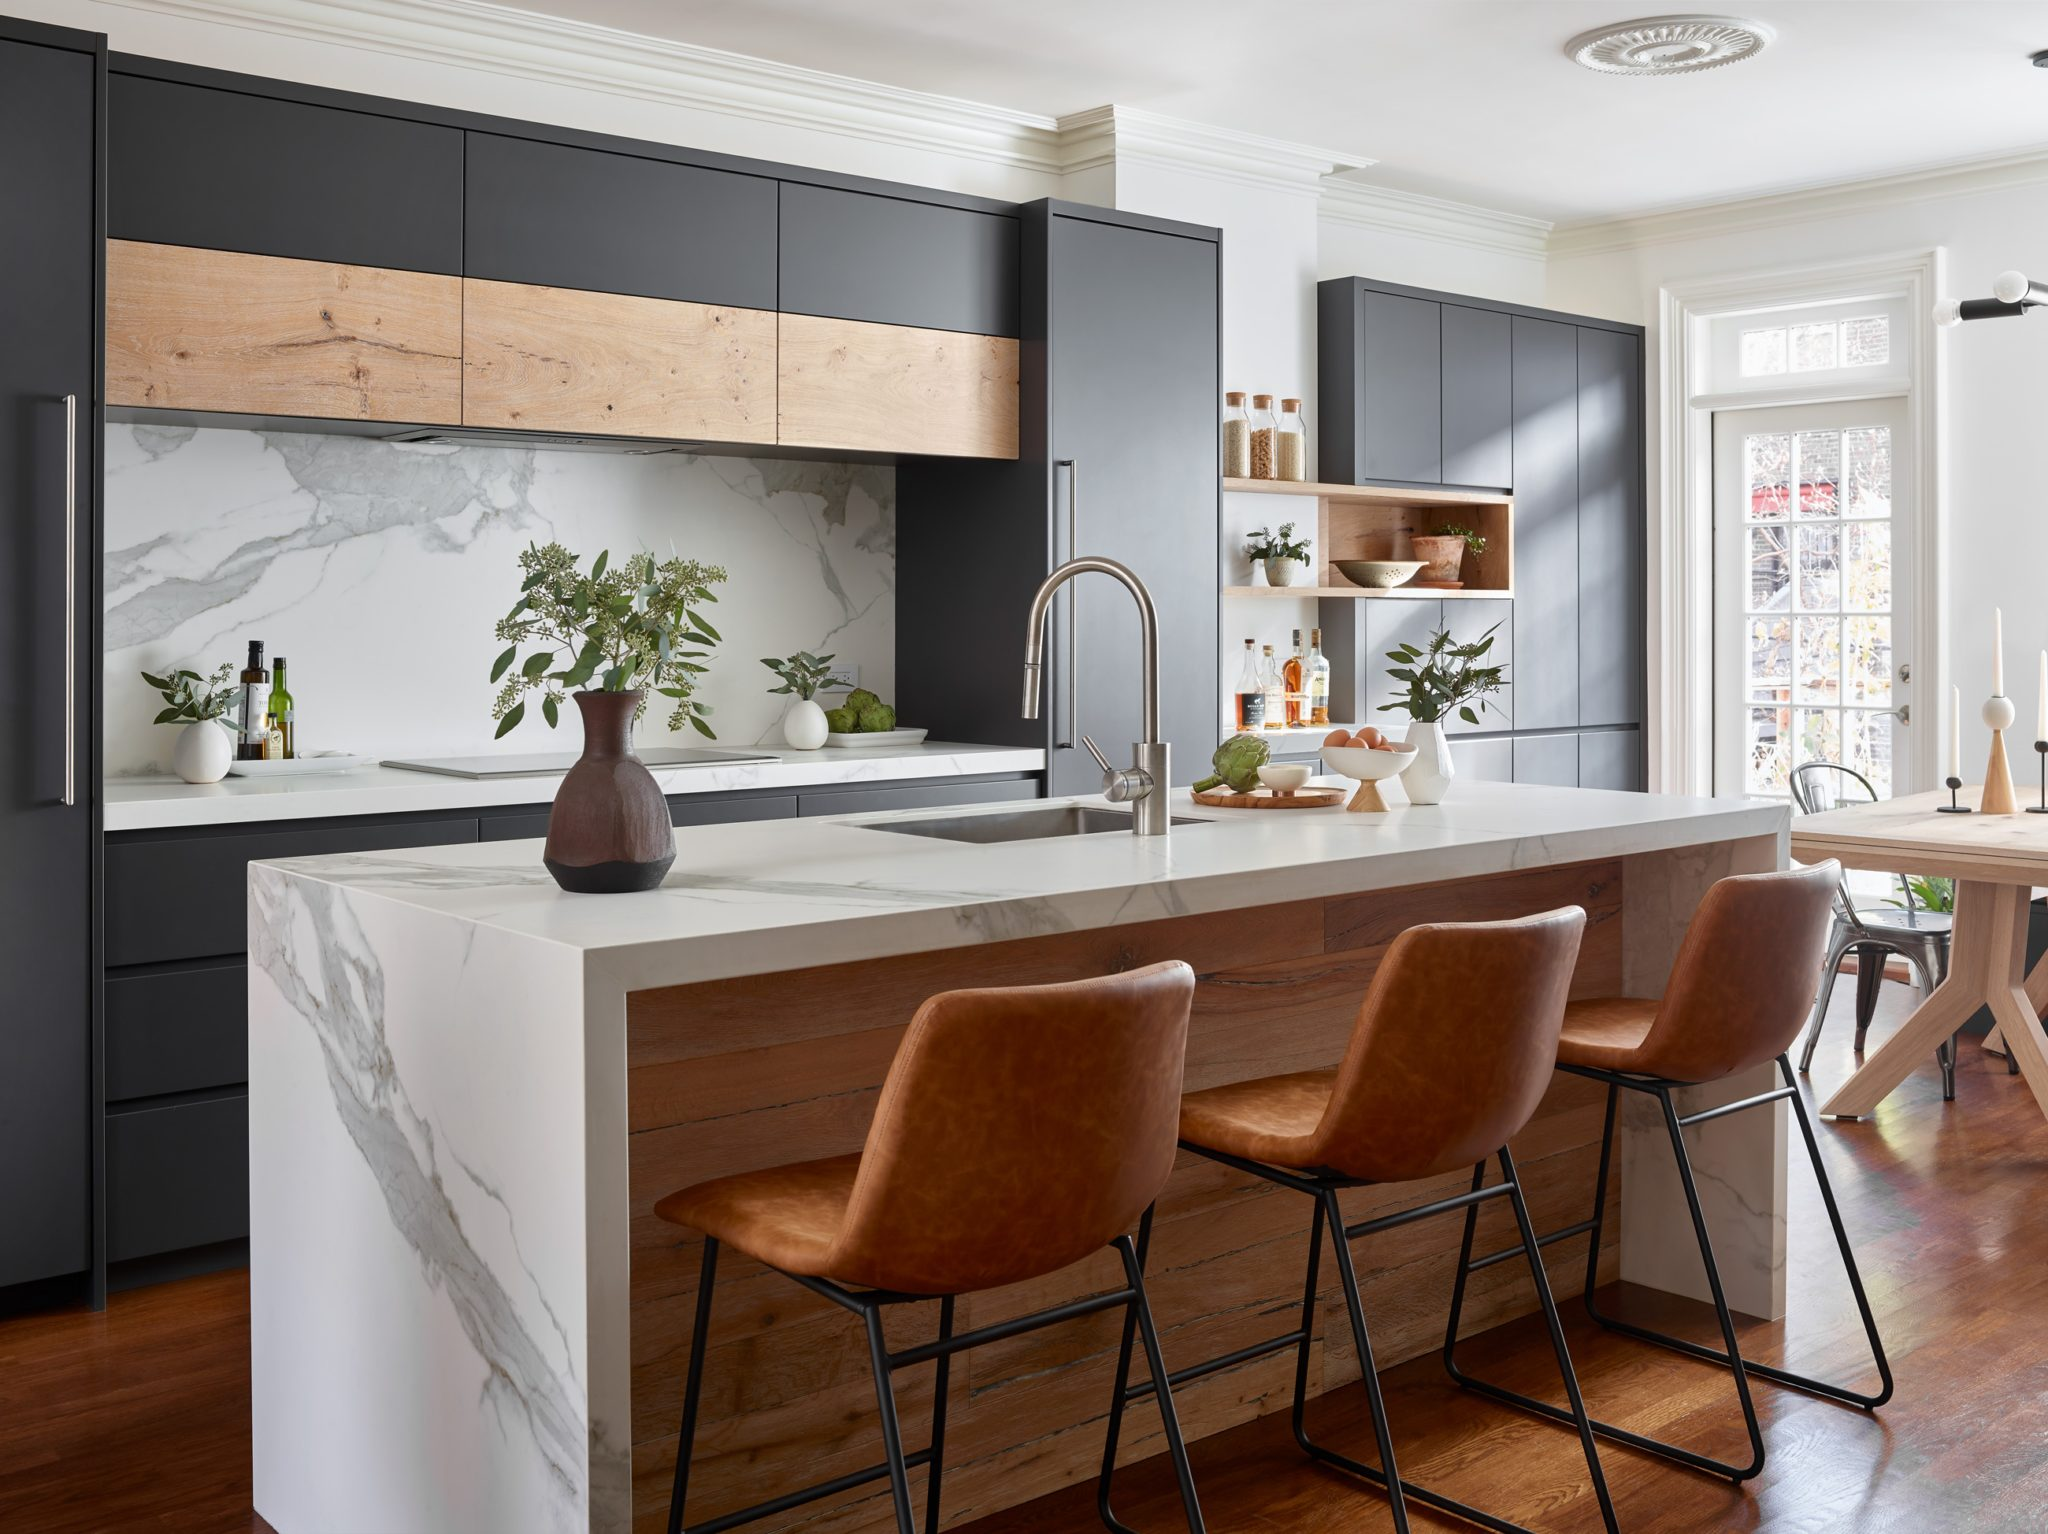 Stunning South End Kitchen, modern warmth by New England Design Works